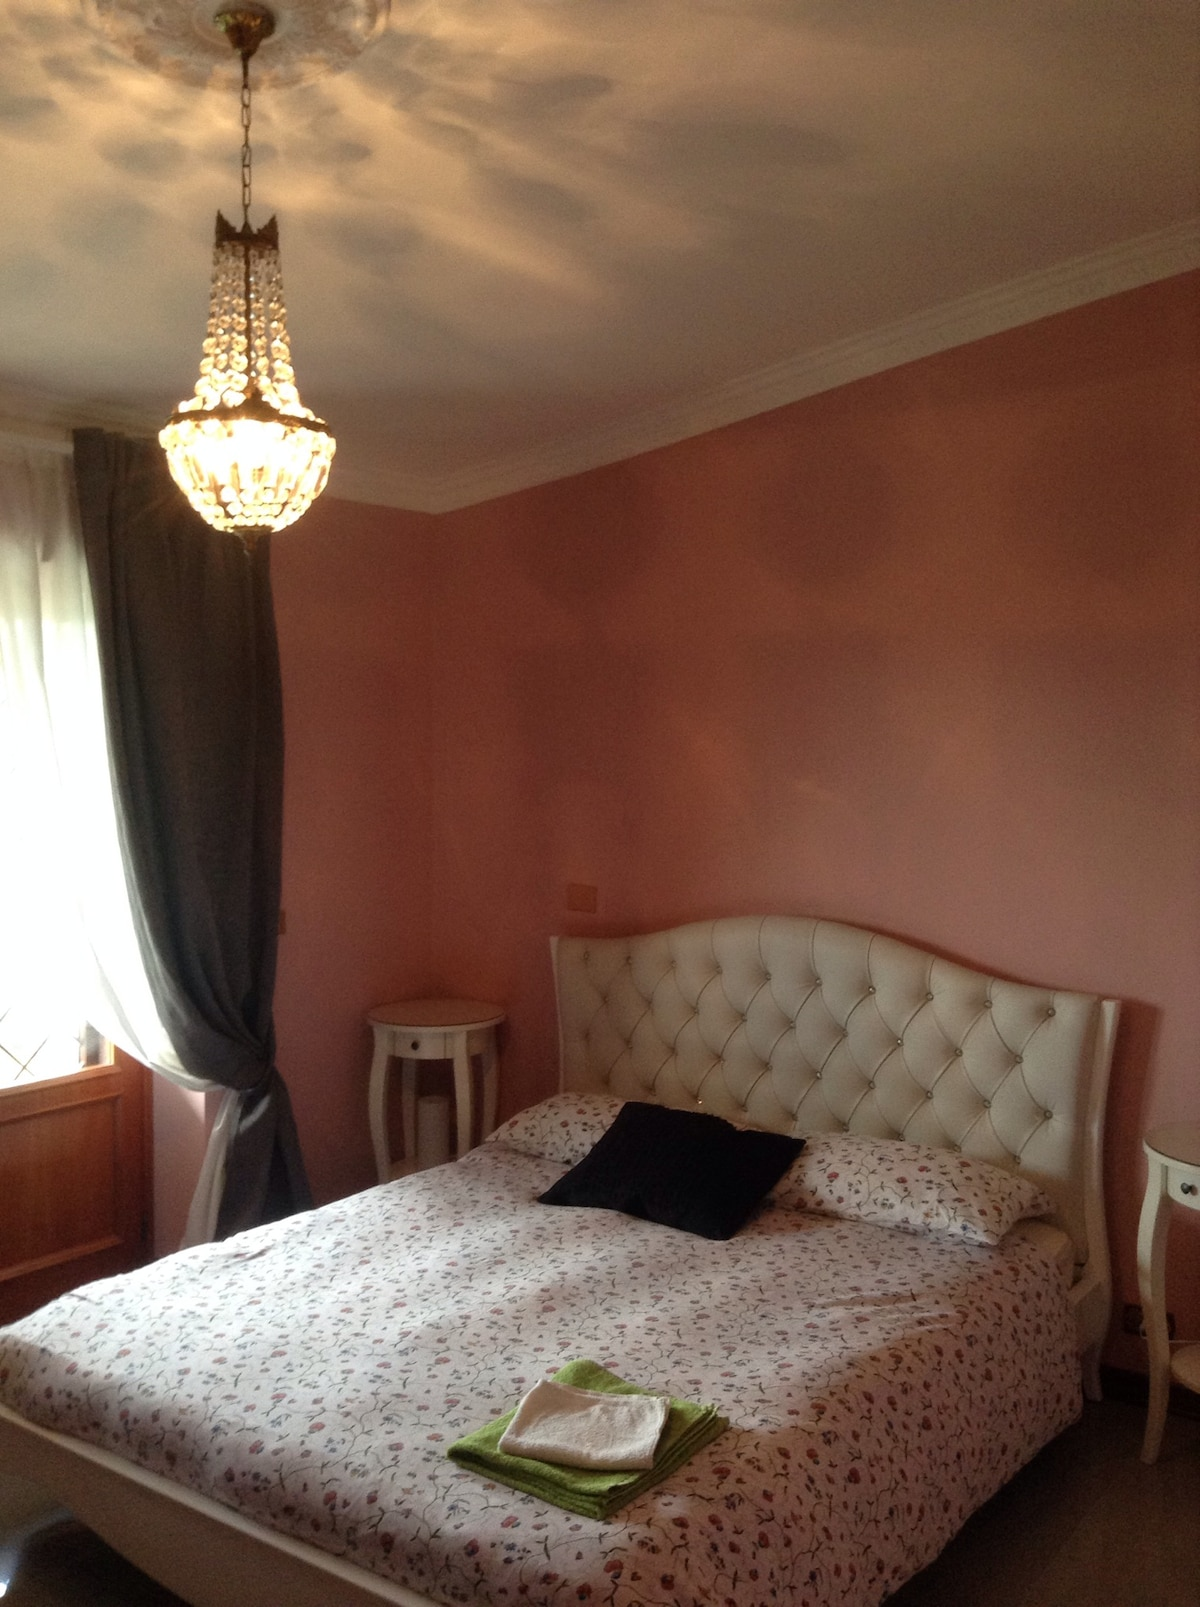 The romantic bedroom